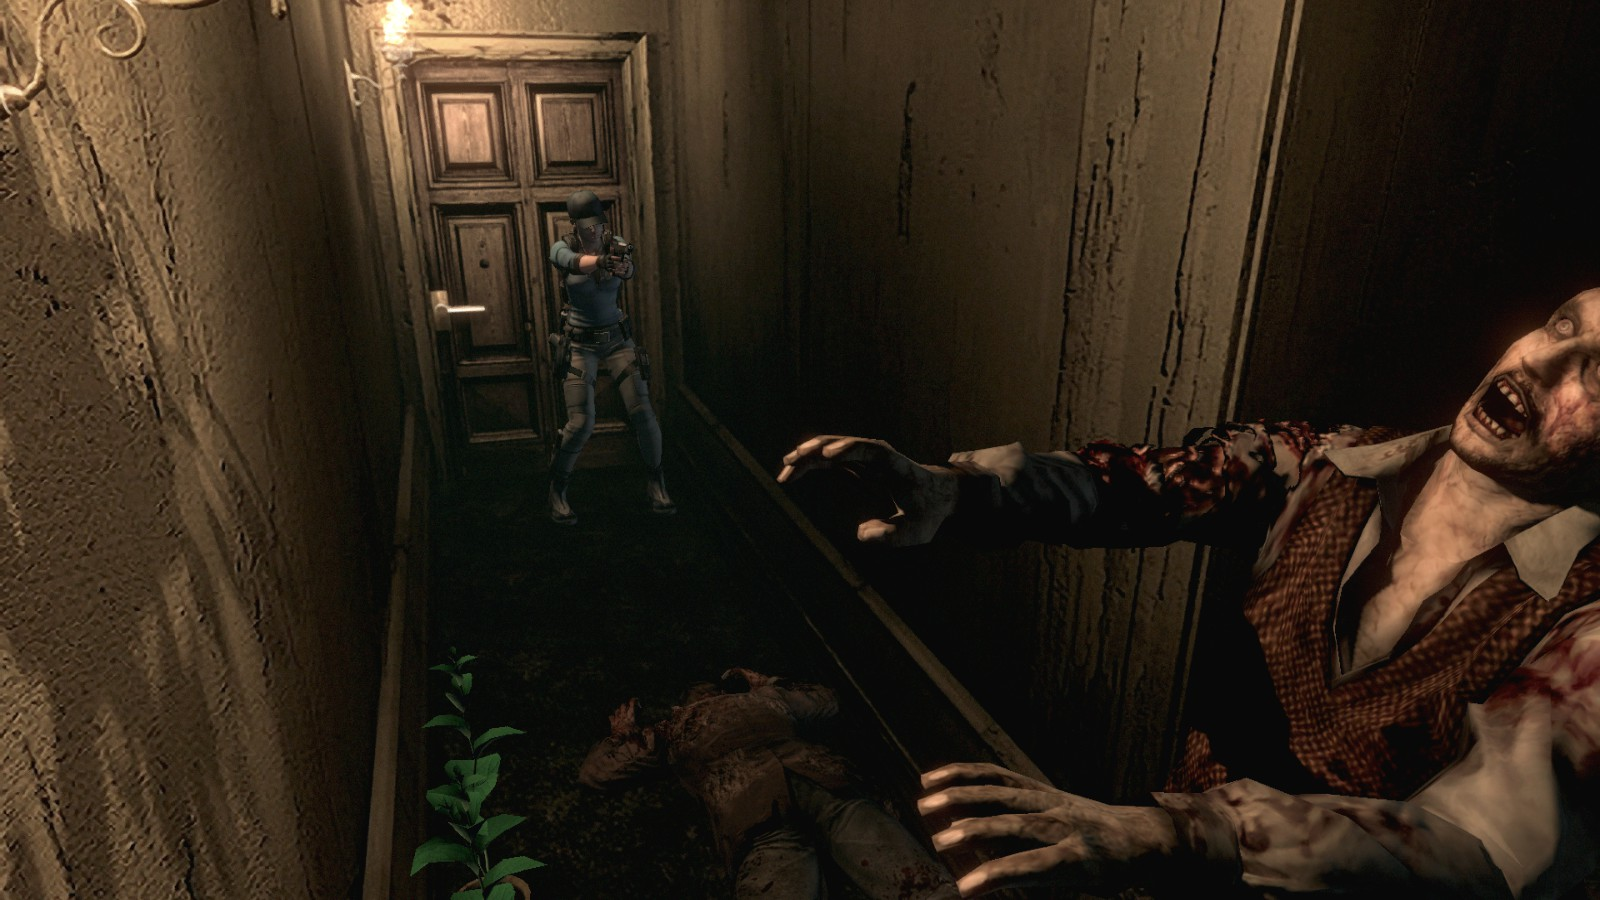 Opinion Finding Resident Evil Again Requires Letting Go